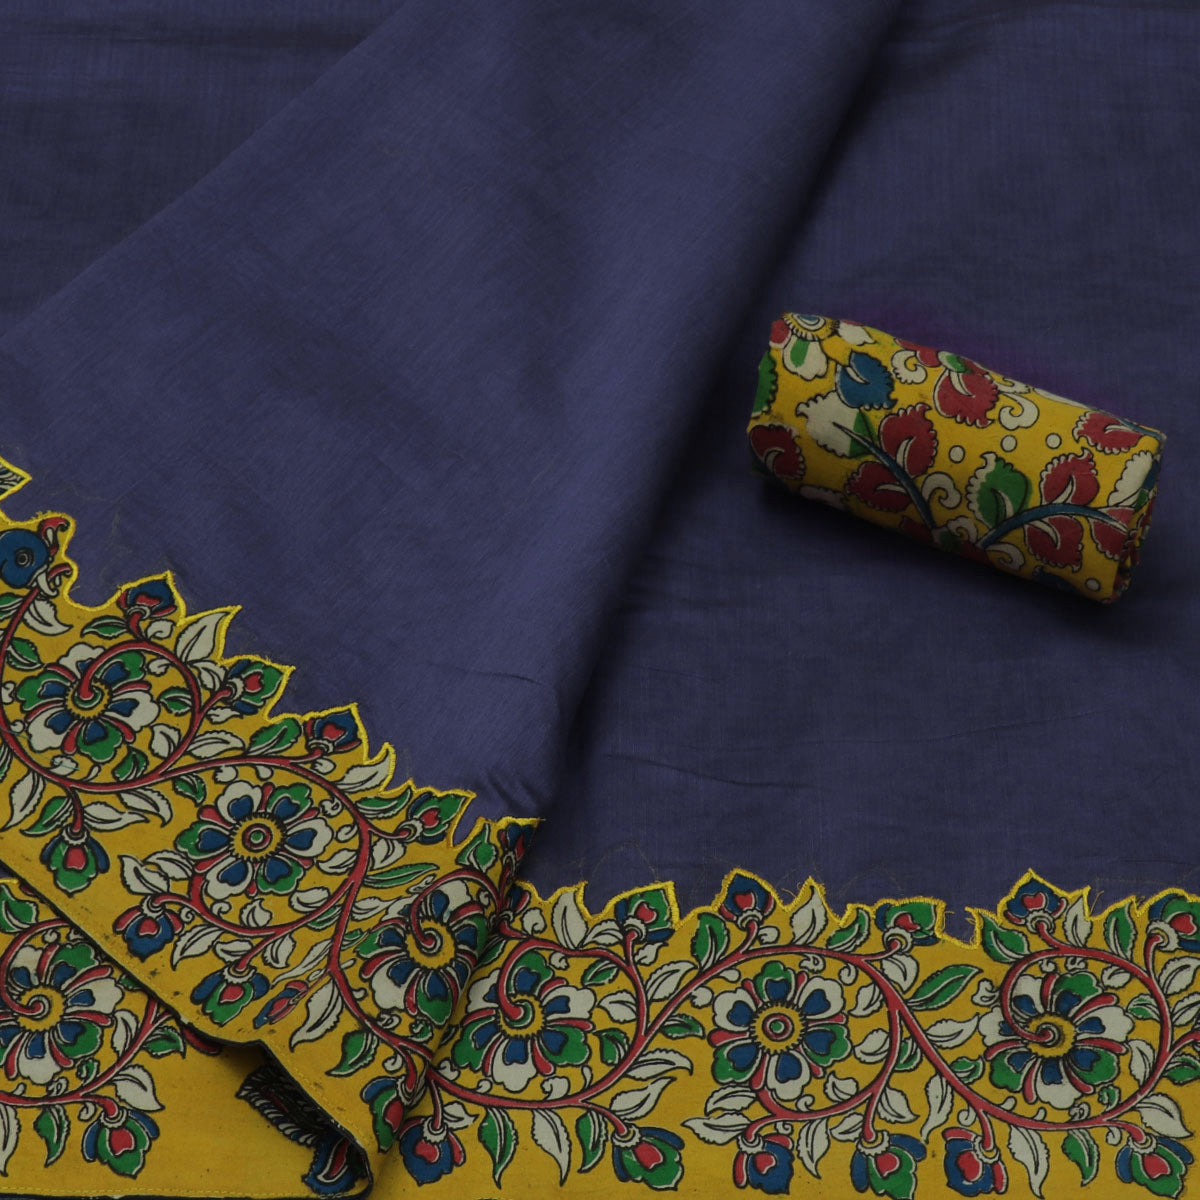 Kalamkari Saree Blue shade with kalamkari applique work